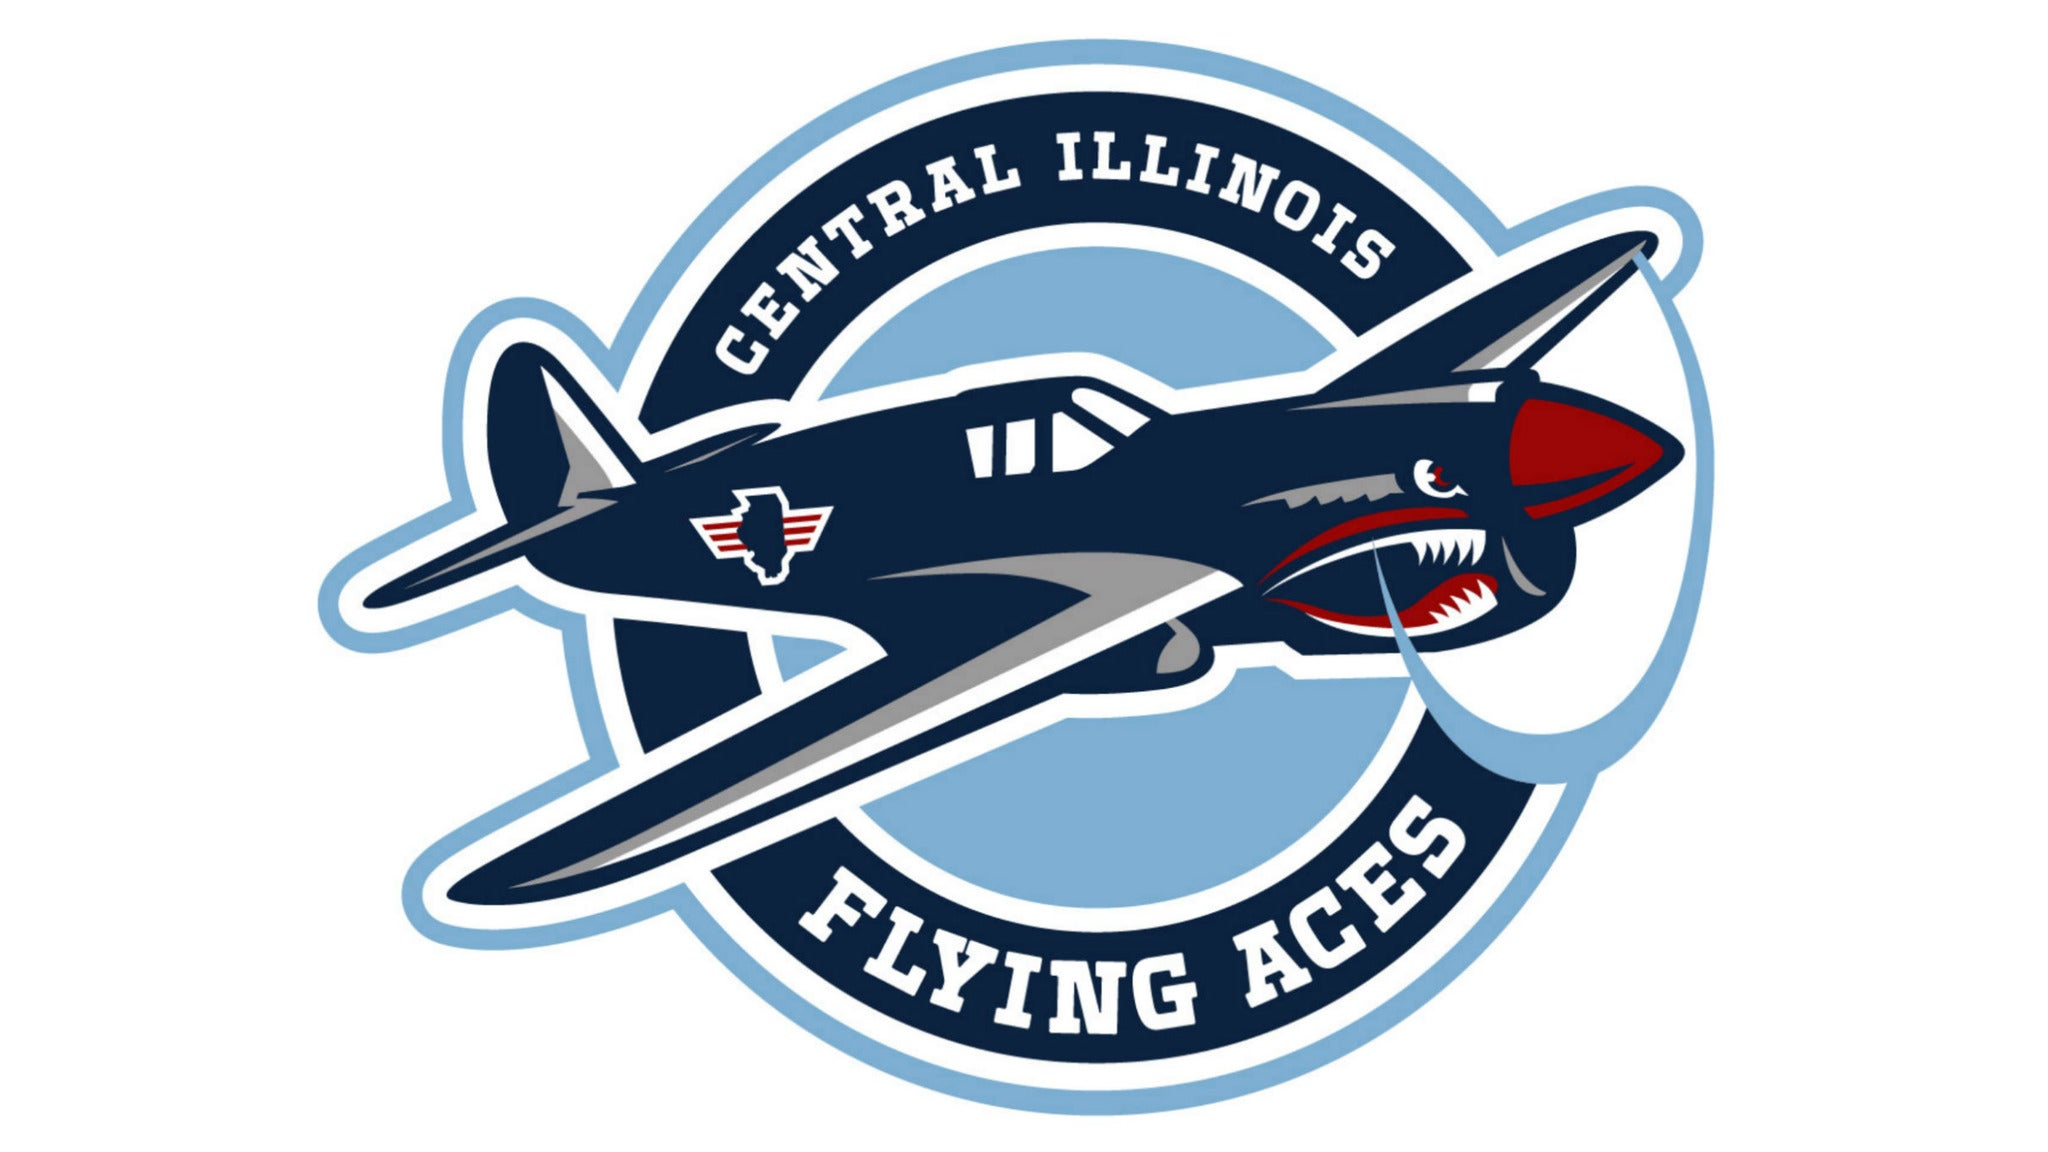 Central Illinois Flying Aces vs. Team Usa U18 Hockey